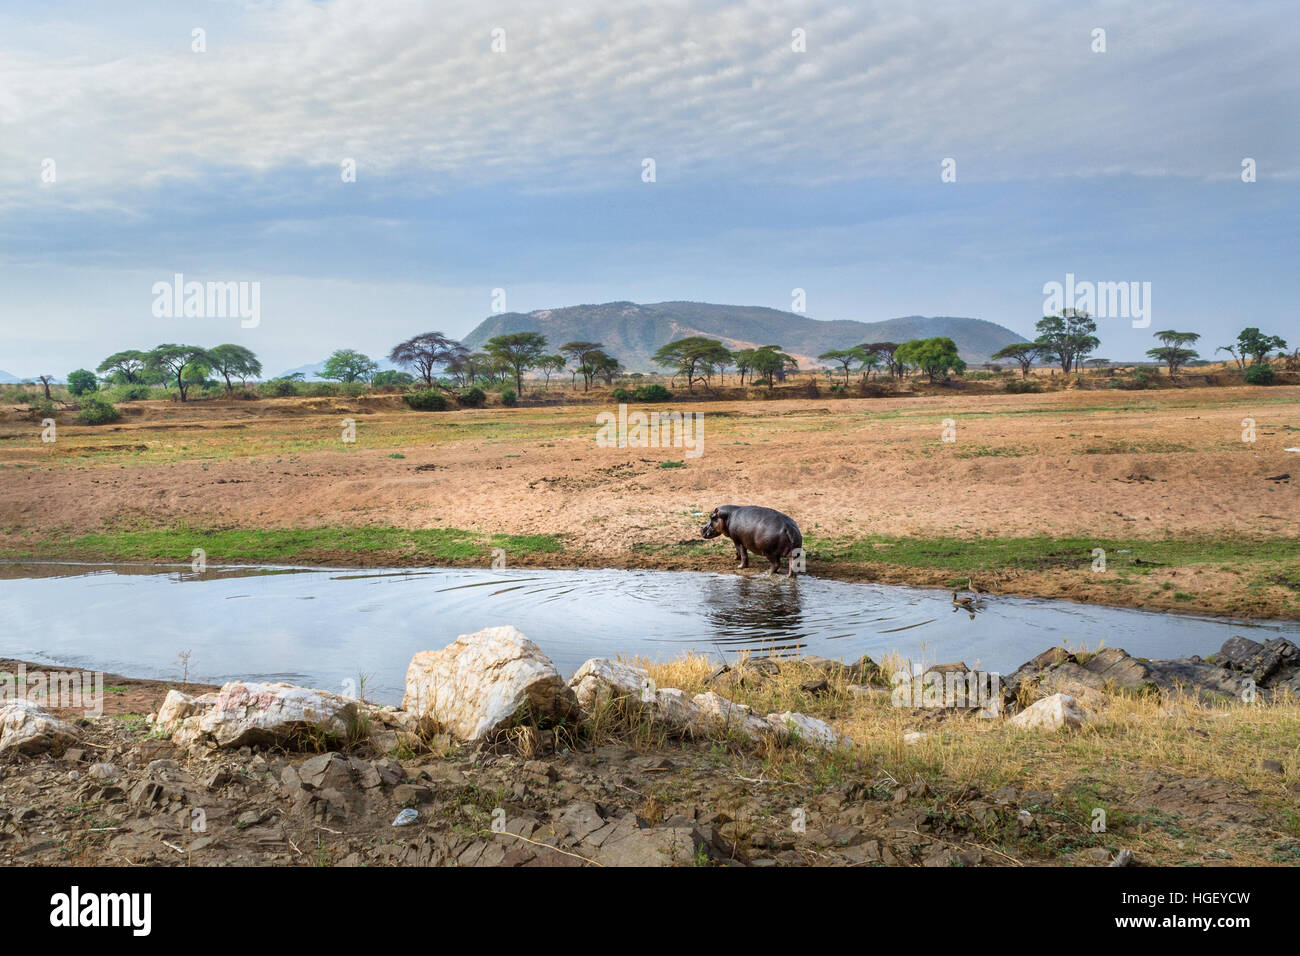 Hippo next to our camp, Africa, safari - Stock Image